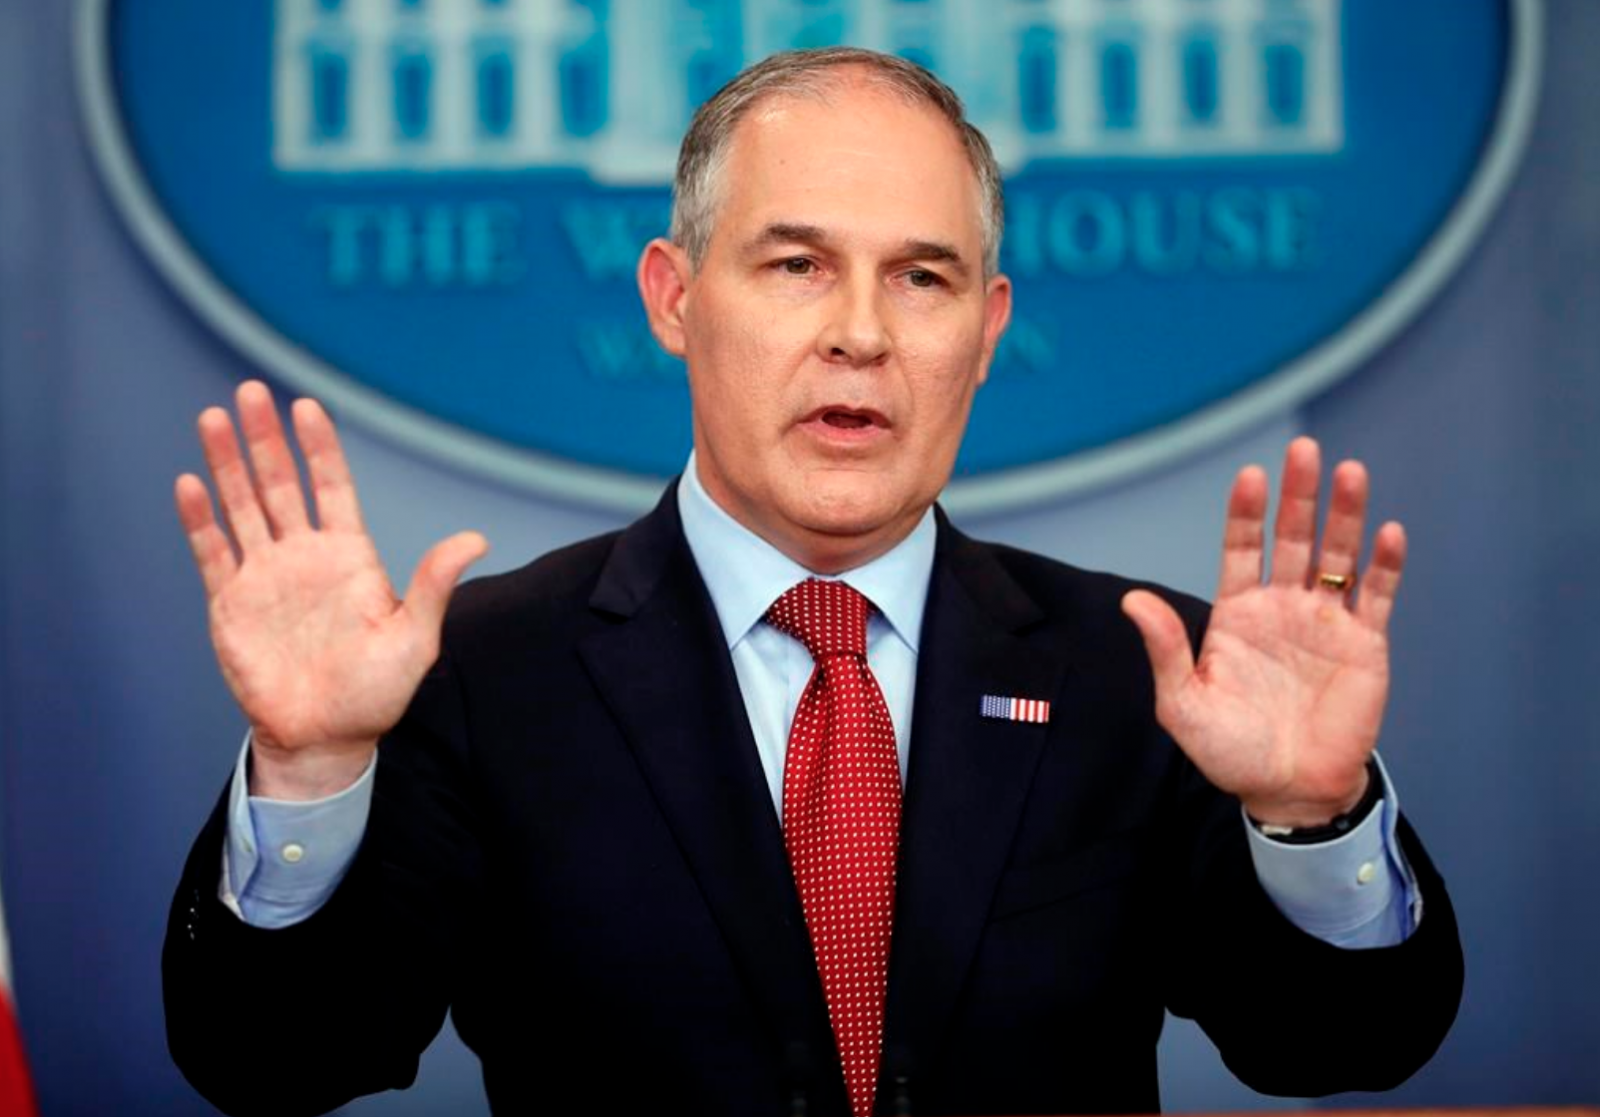 Scott Pruitt, EPA, Environmental Protection Agency, Donald Trump